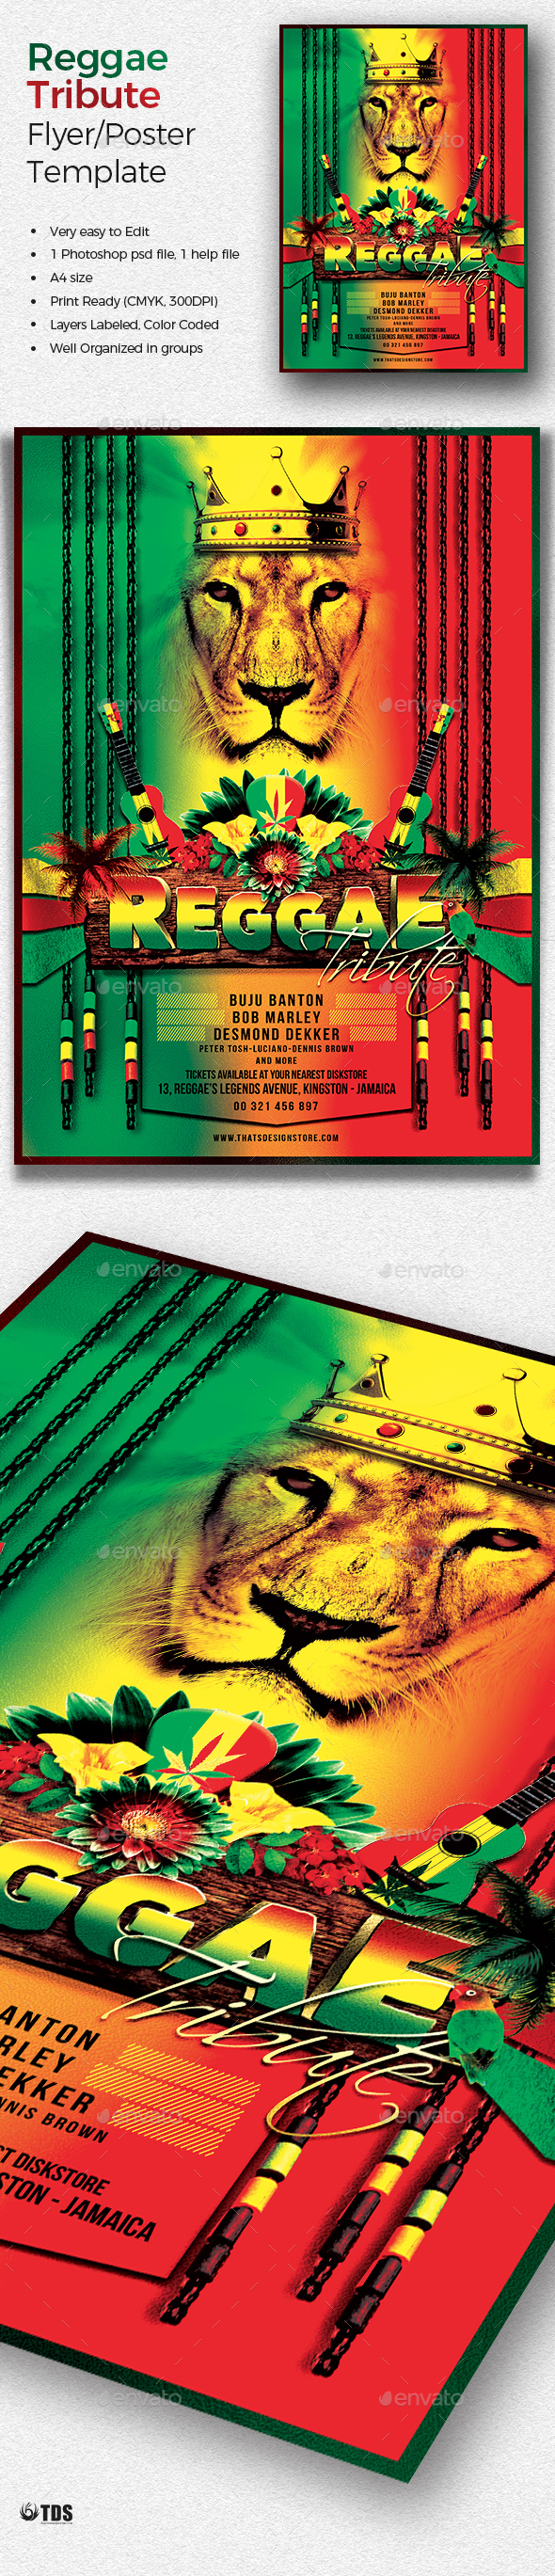 Reggae Tribute Flyer Template by lou606 | GraphicRiver